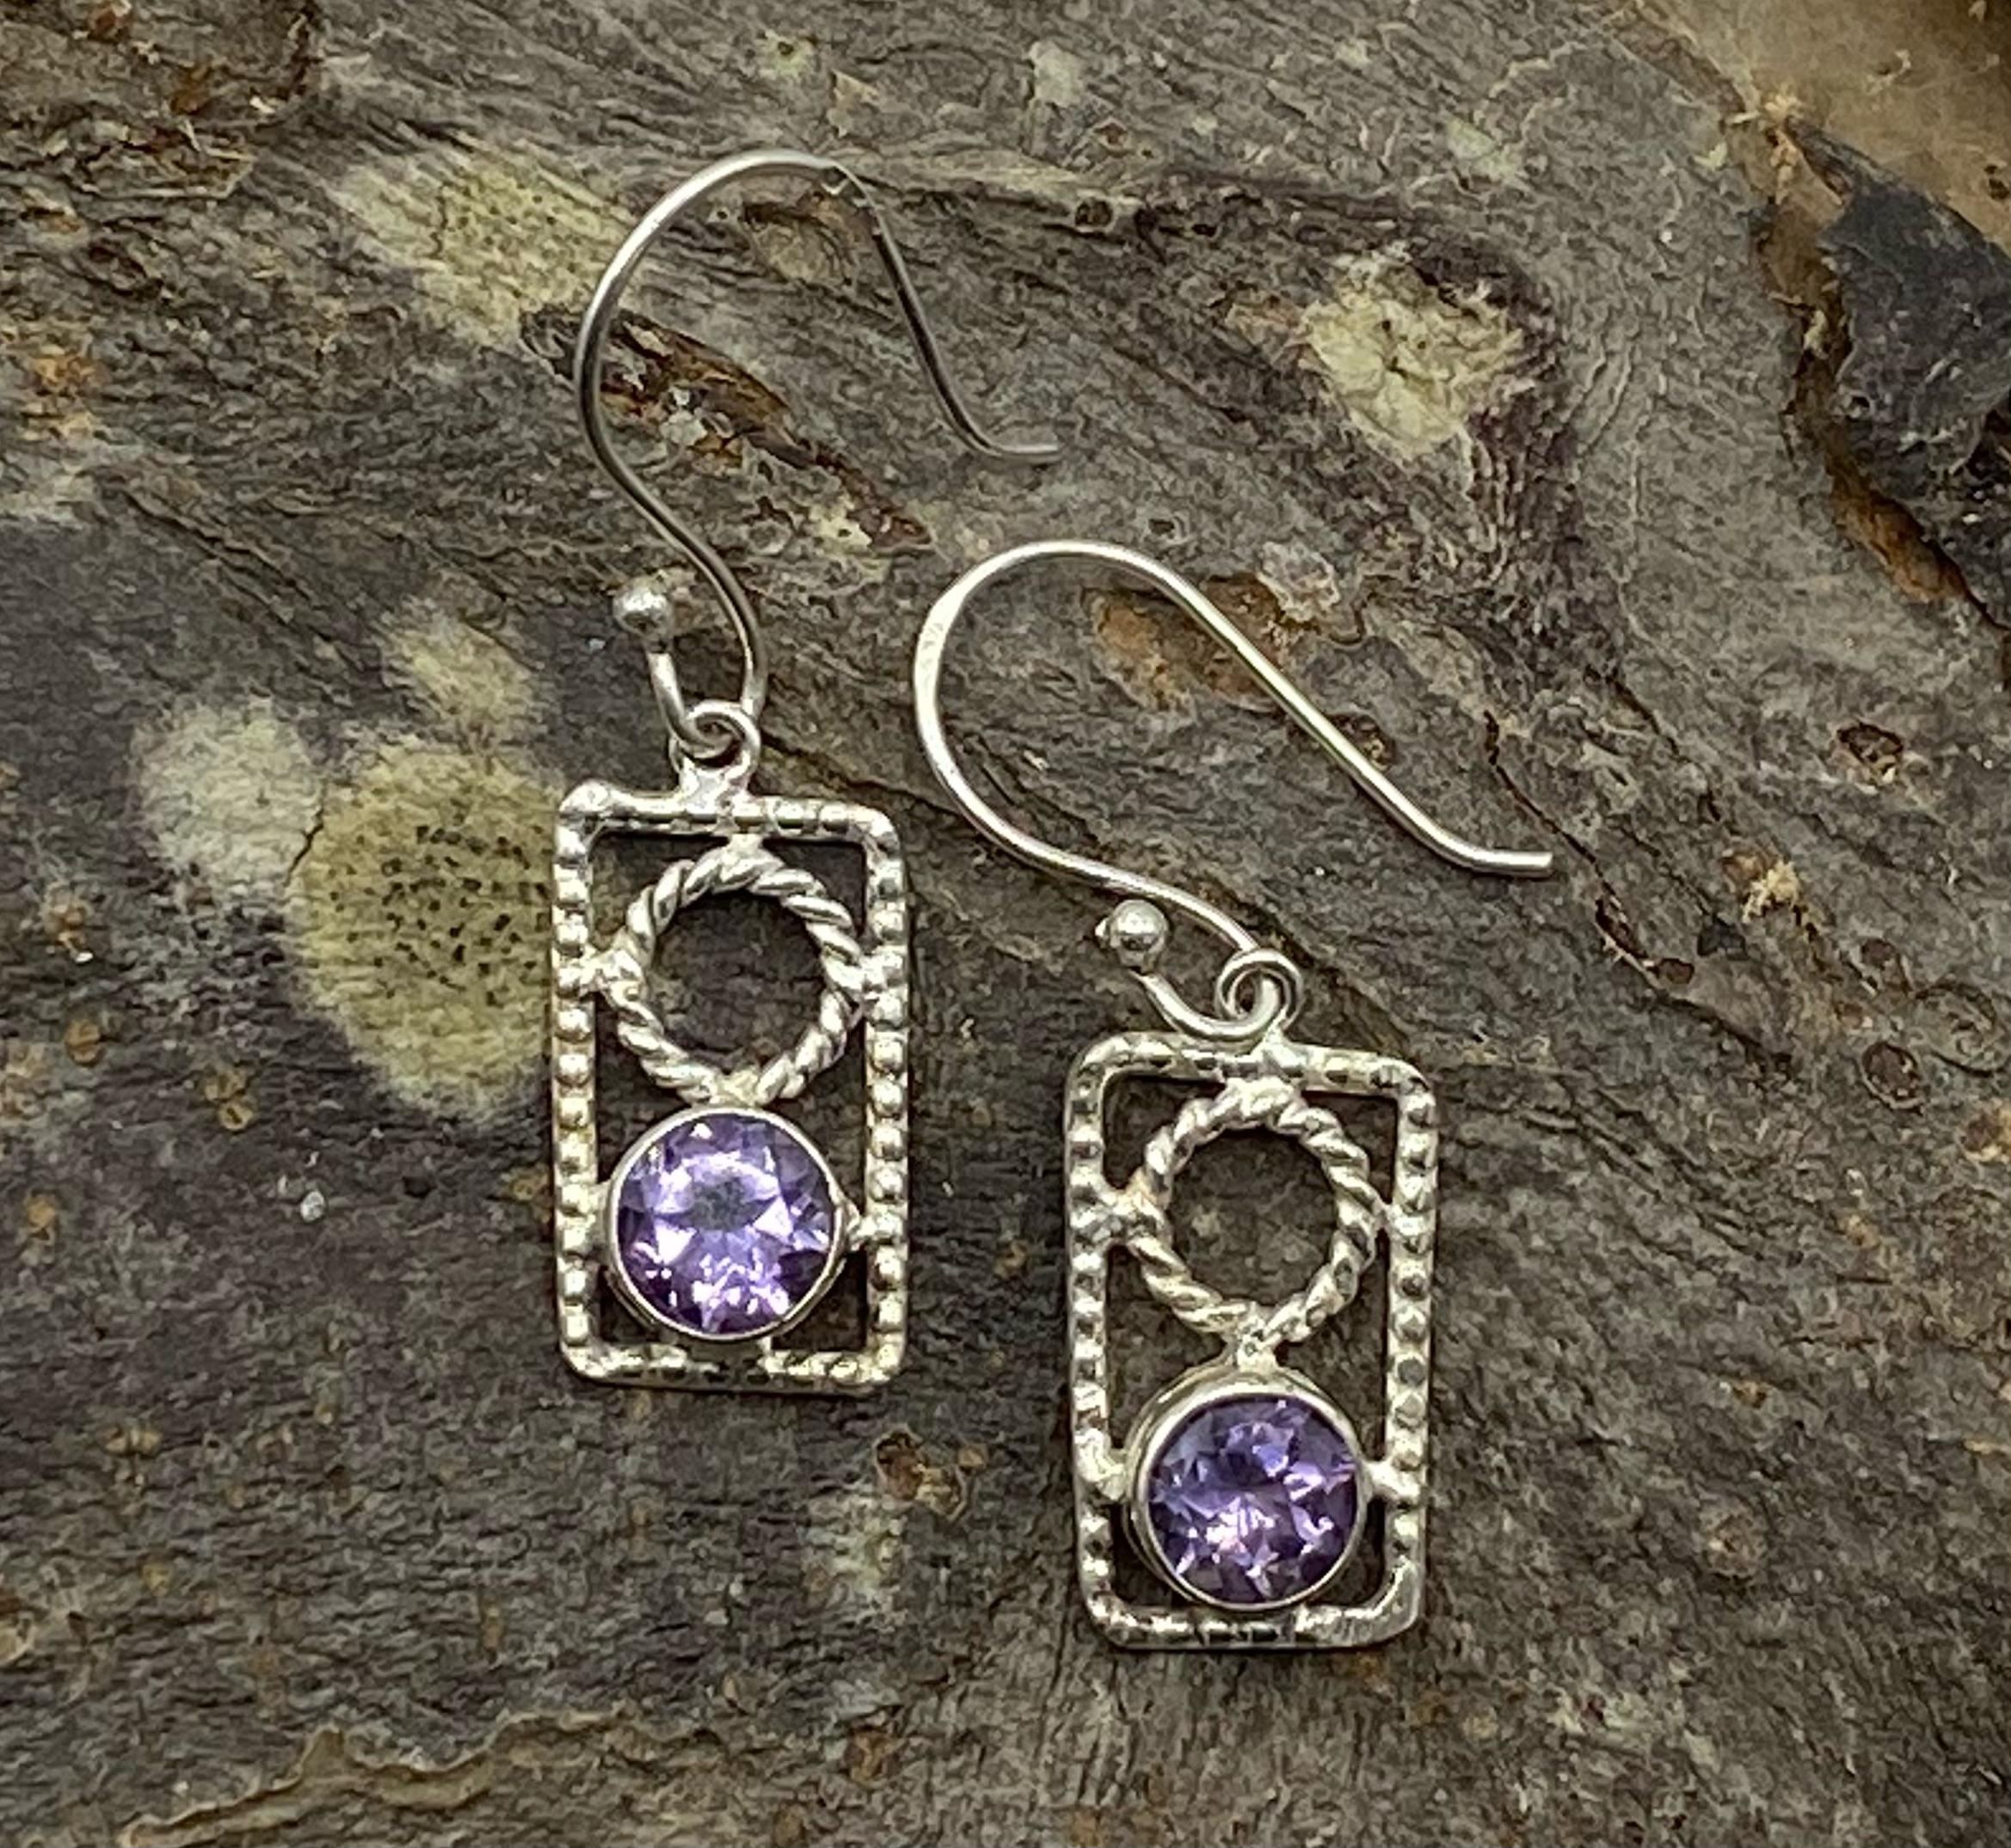 Silver Rectangular Earrings with Faceted Amethyst Cabochon